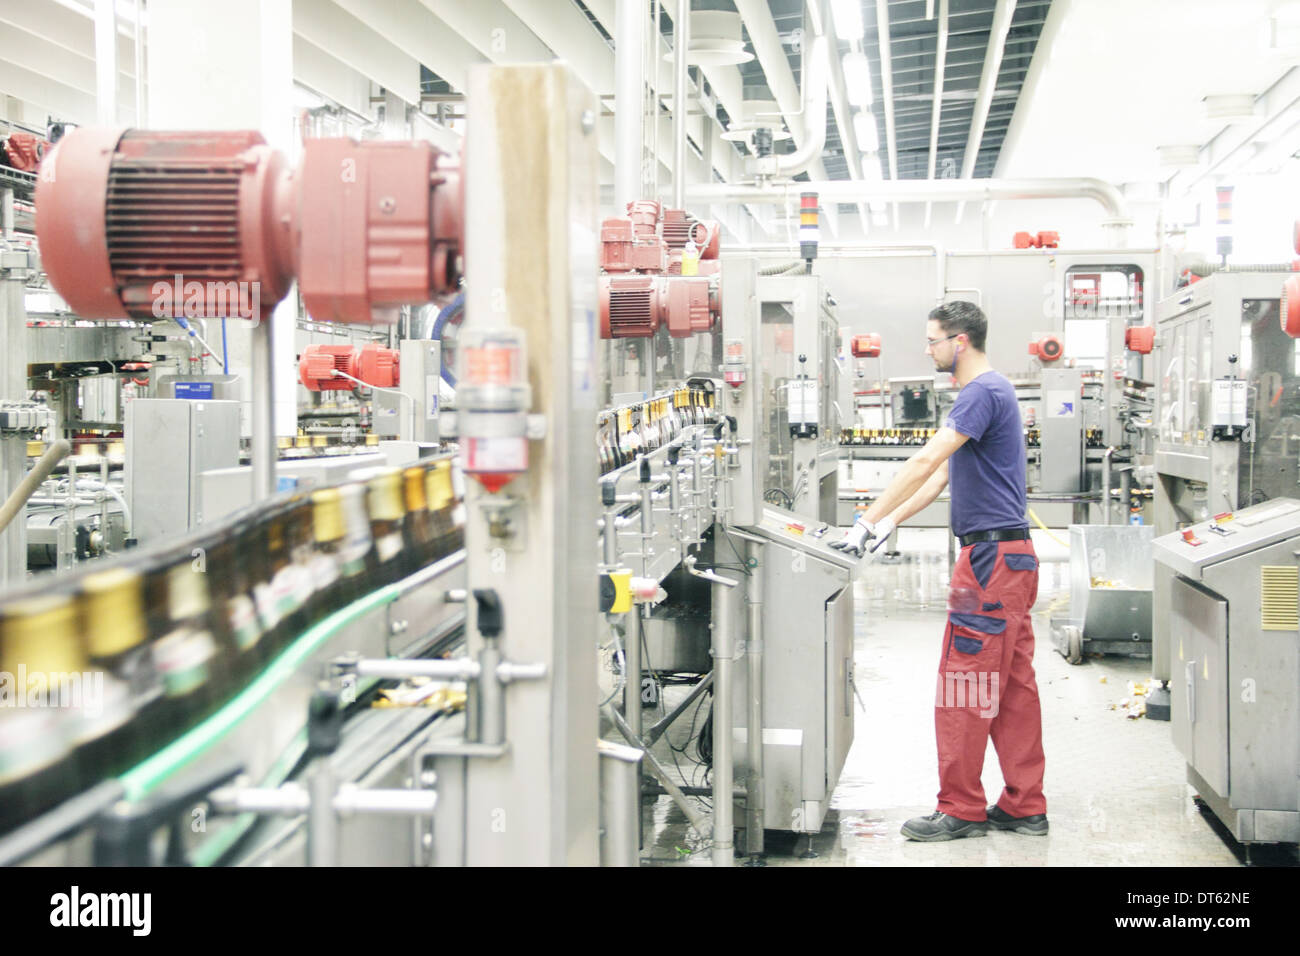 Man working on production line in brewery - Stock Image